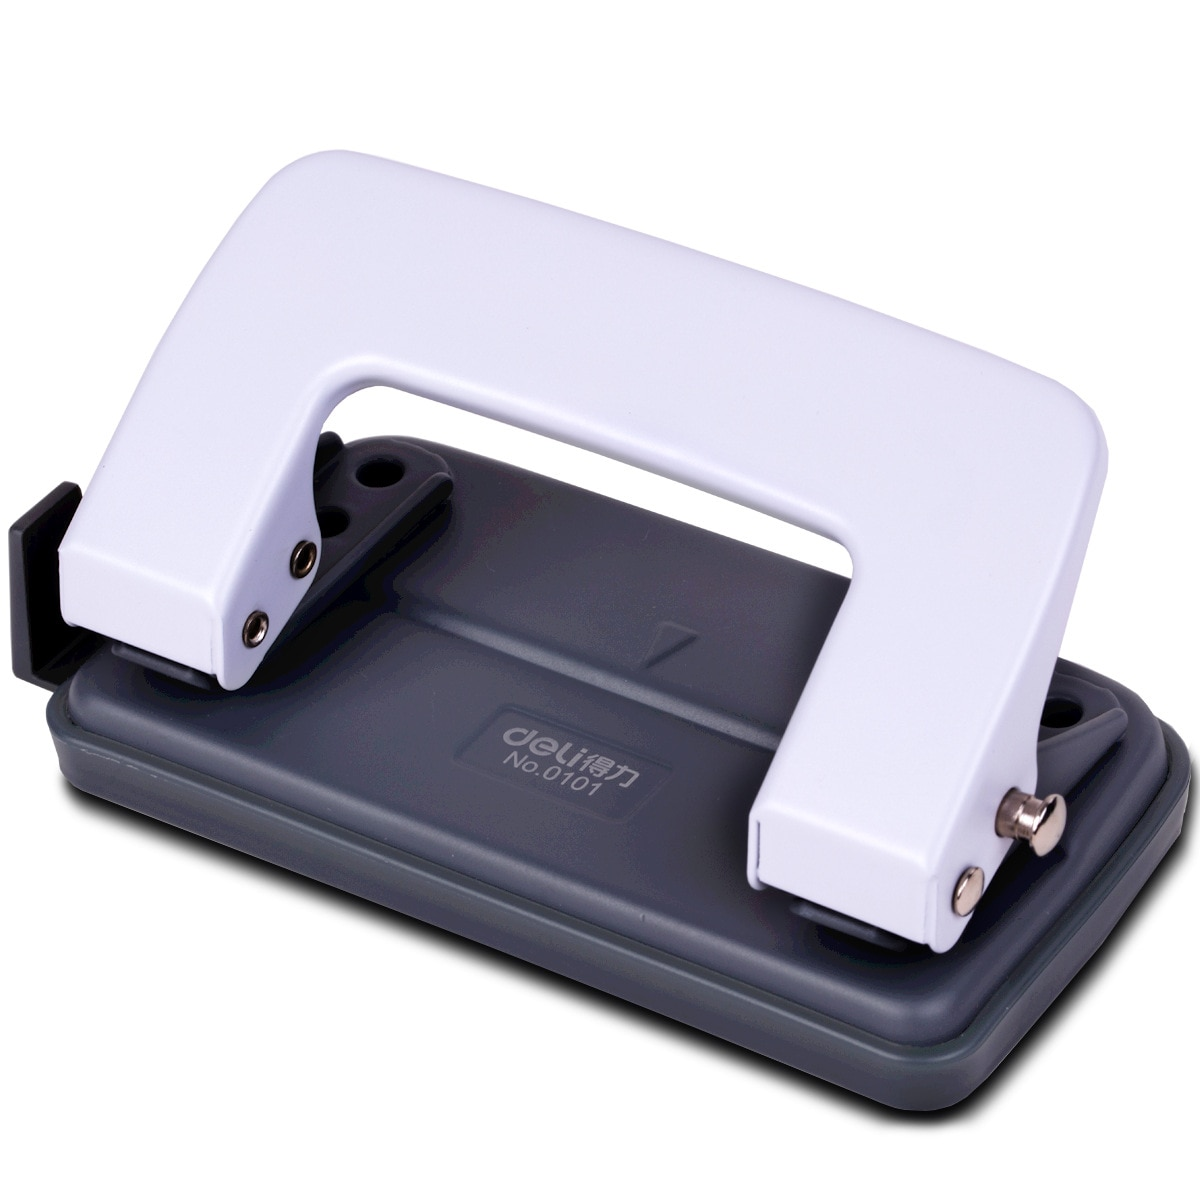 Deli 0101 Office Supplies Hole-Punching Machine Two-Hole Hole Puncher Moving Device Can Play 10 Copy Paper